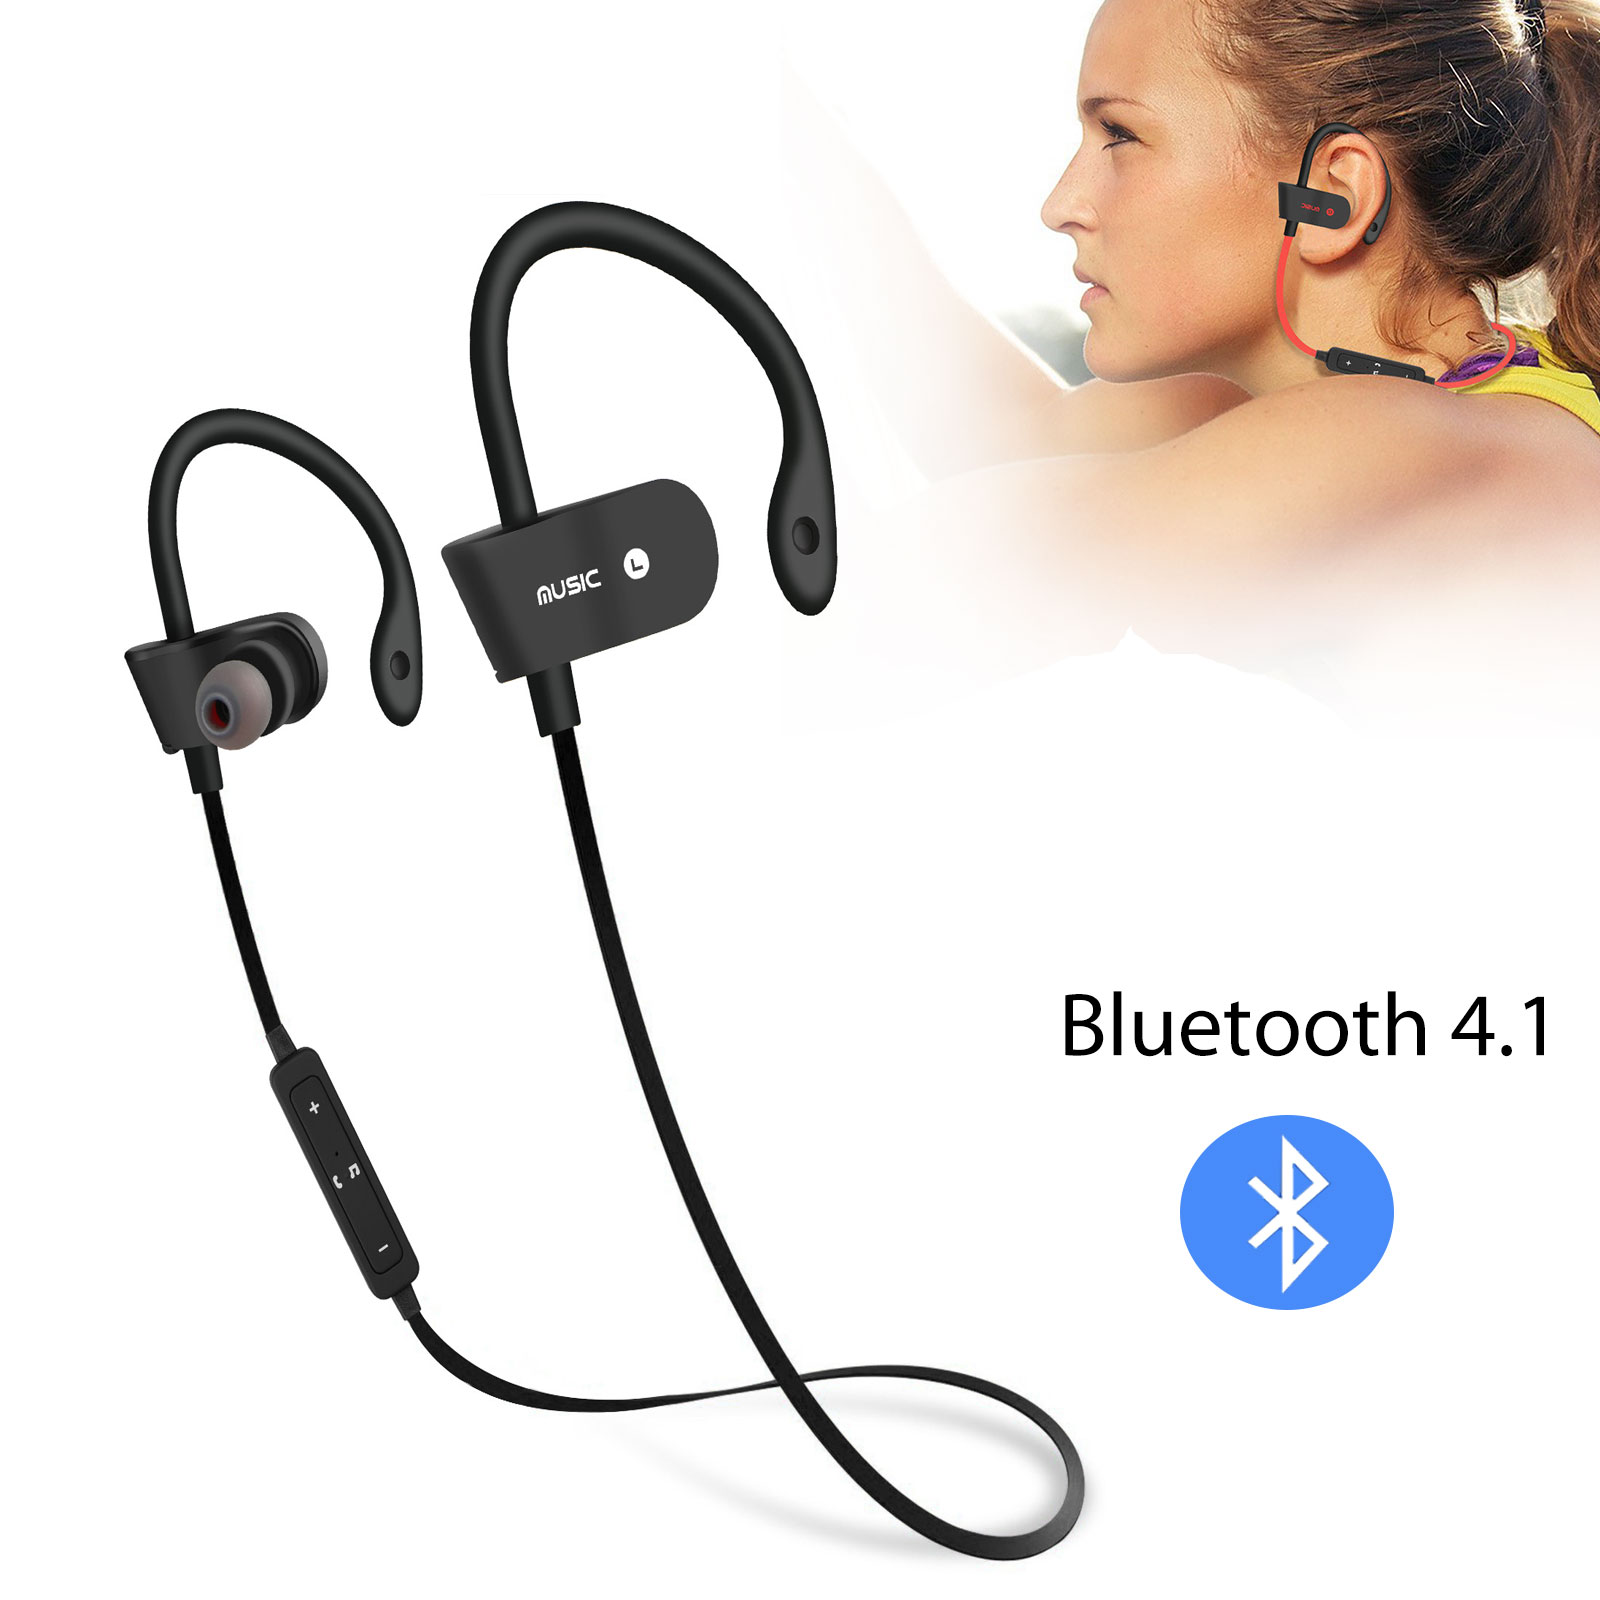 Wireless Bluetooth Earbuds, EEEKit Universal Wireless Bluetooth 4.1 Earphones HD Stereo In-Ear Headset Sport Neckband Headphone Hands-Free with Built-in Mic